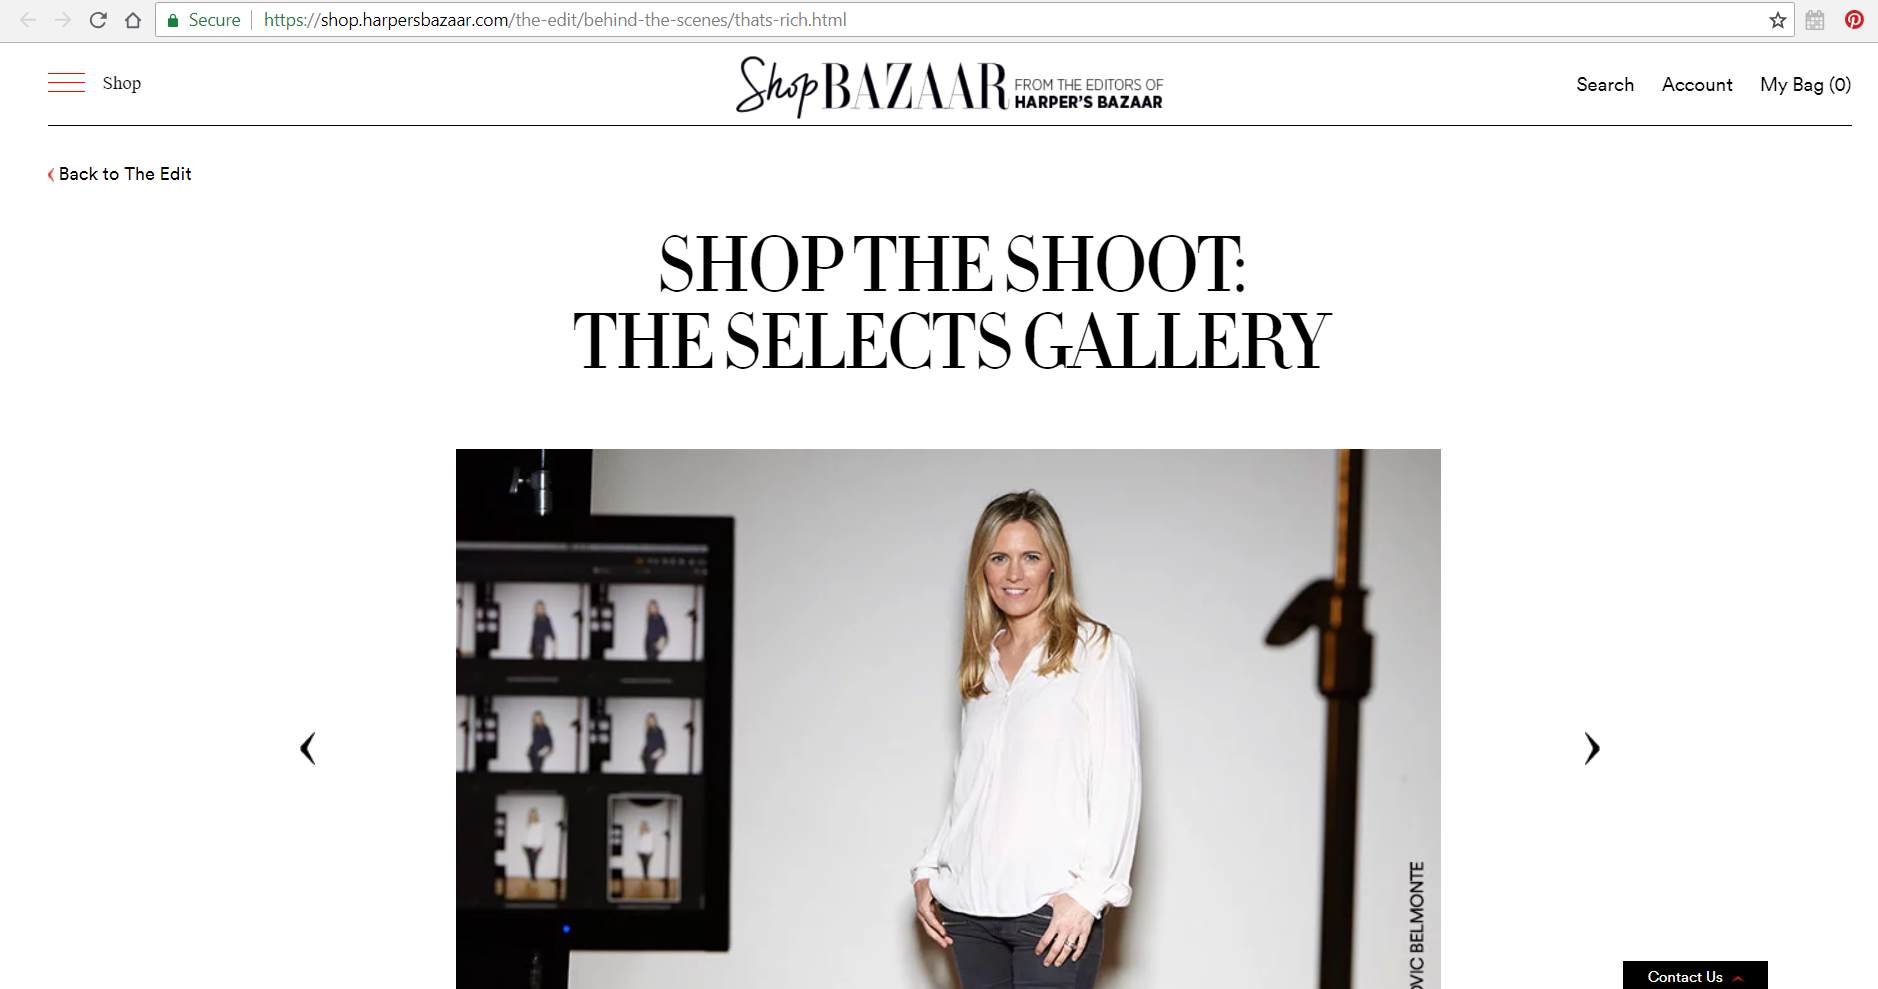 """Recognizing editorial photography as true works of art, Harper's  BAZAAR , YSL Beauté Global Beauty Director Tom Pecheux, and photographer Kenneth Willardt collaborated with The Selects Gallery founder Marie Audier D'Alessandris to breathe second life into the """"   That's Rich   """" shoot from our September Issue with framed, limited-edition signed prints for sale.   ShopBAZAAR talks to D'Alessandris about the pieces and how art can enhance your space and life.    Read the full interview at  https://shop.harpersbazaar.com/the-edit/behind-the-scenes/thats-rich.html"""